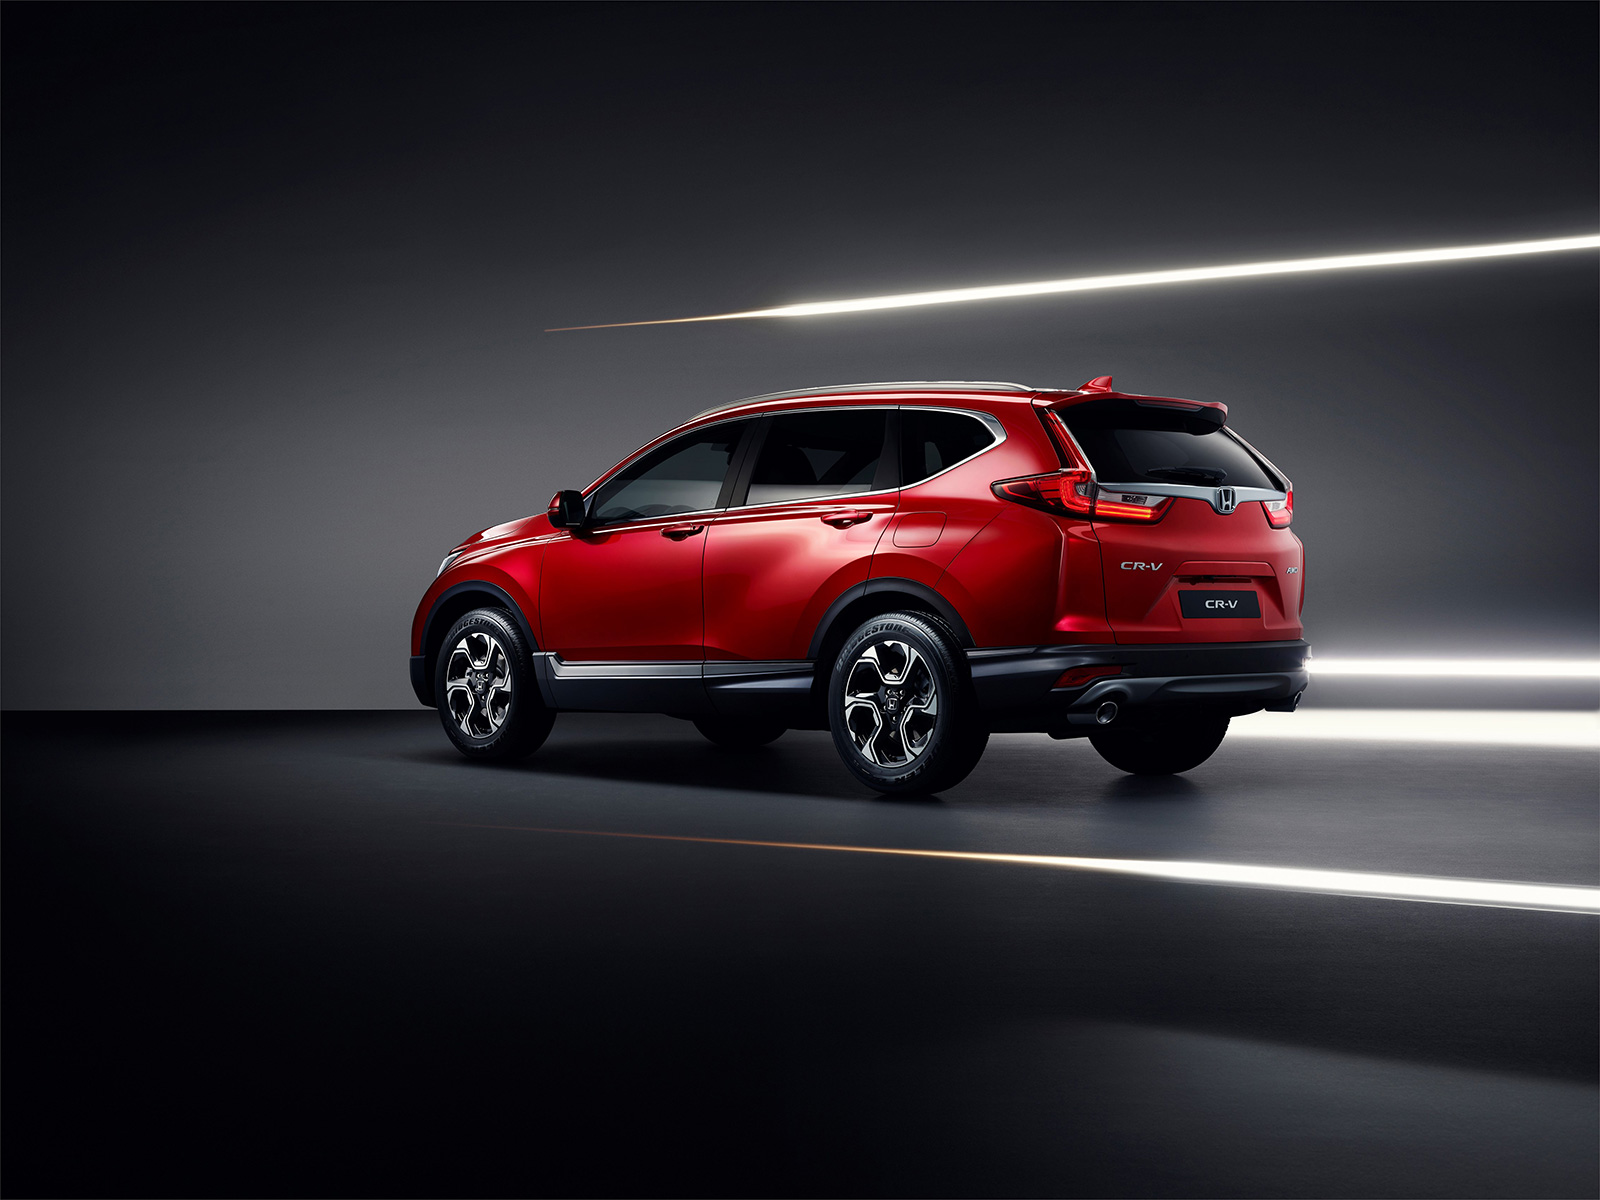 suite safety all it confirmed has go of the thailand destined equipped sensing sale active hp in cr for with be will china honda on but shanghai crv debuts v that hybrid